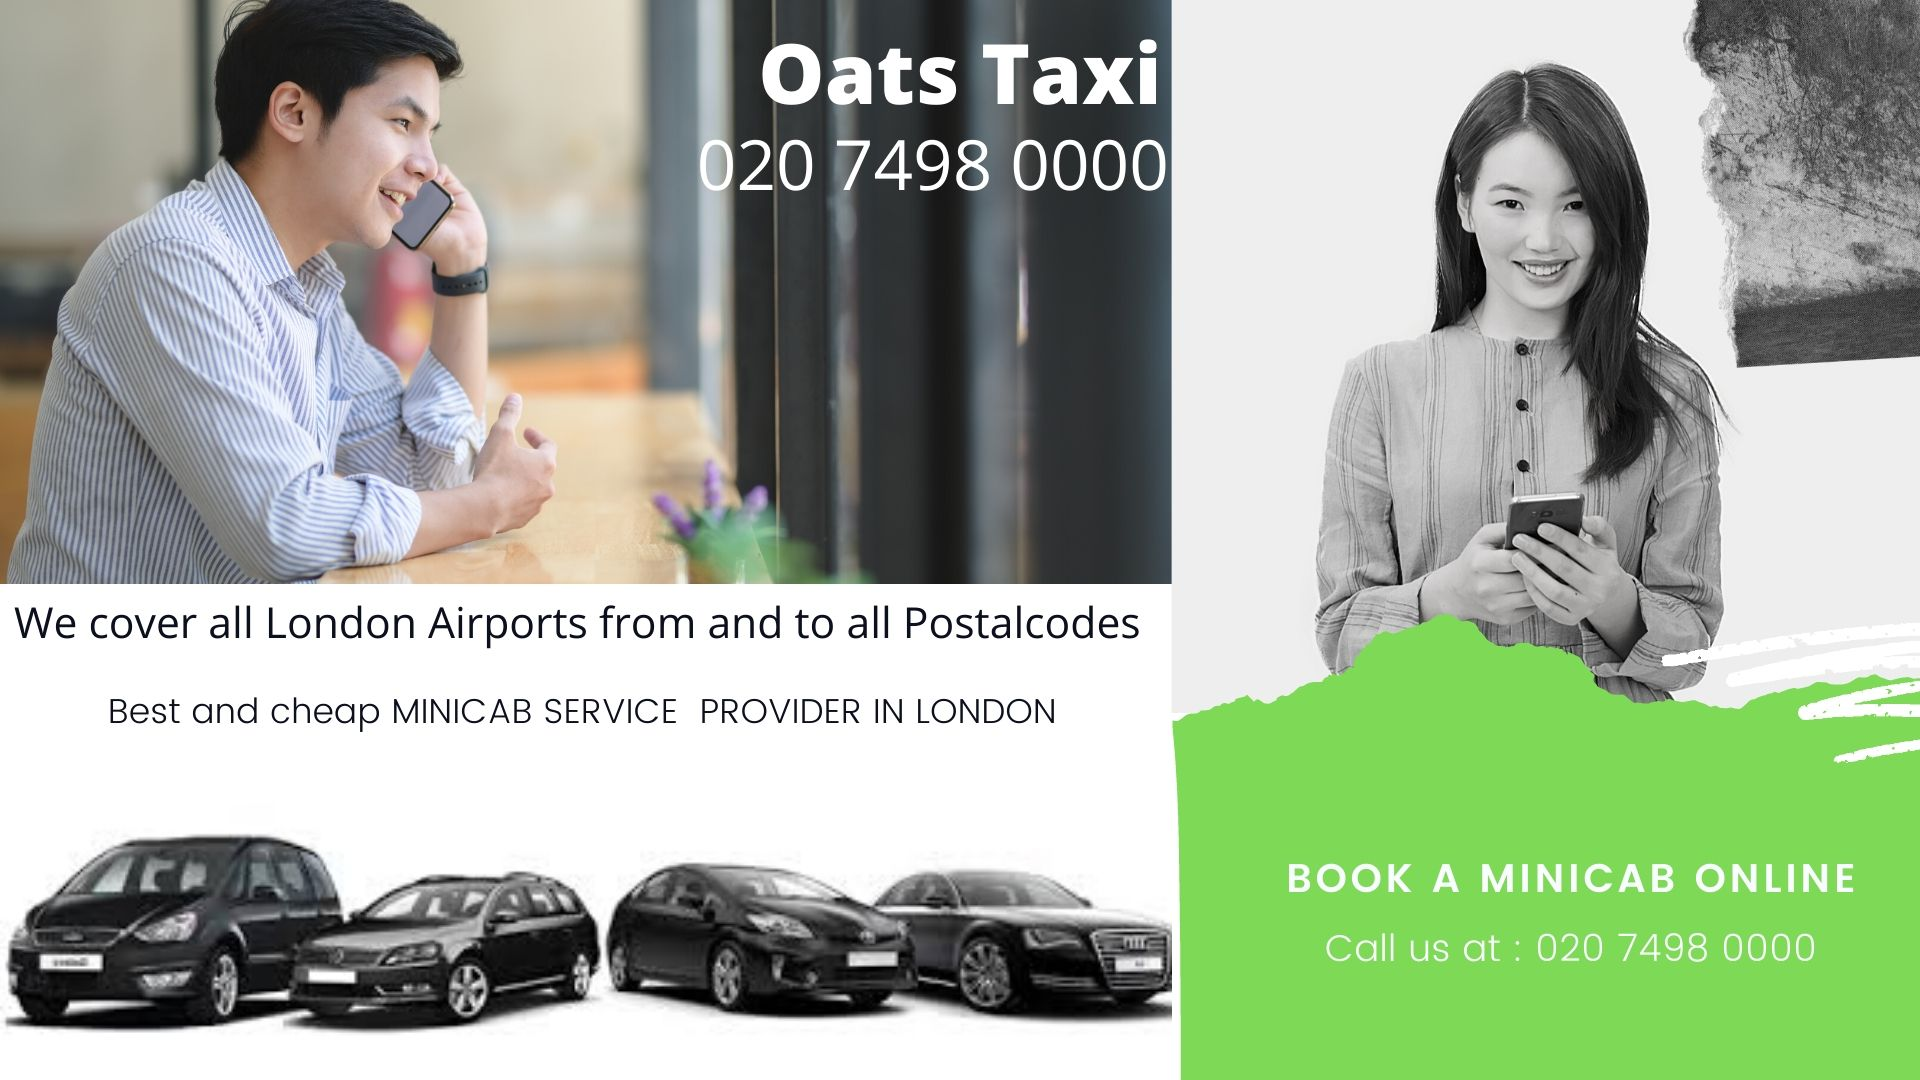 Nearest Taxi Office in South Lambeth | Gatwick Airport | Call now : 02074980000